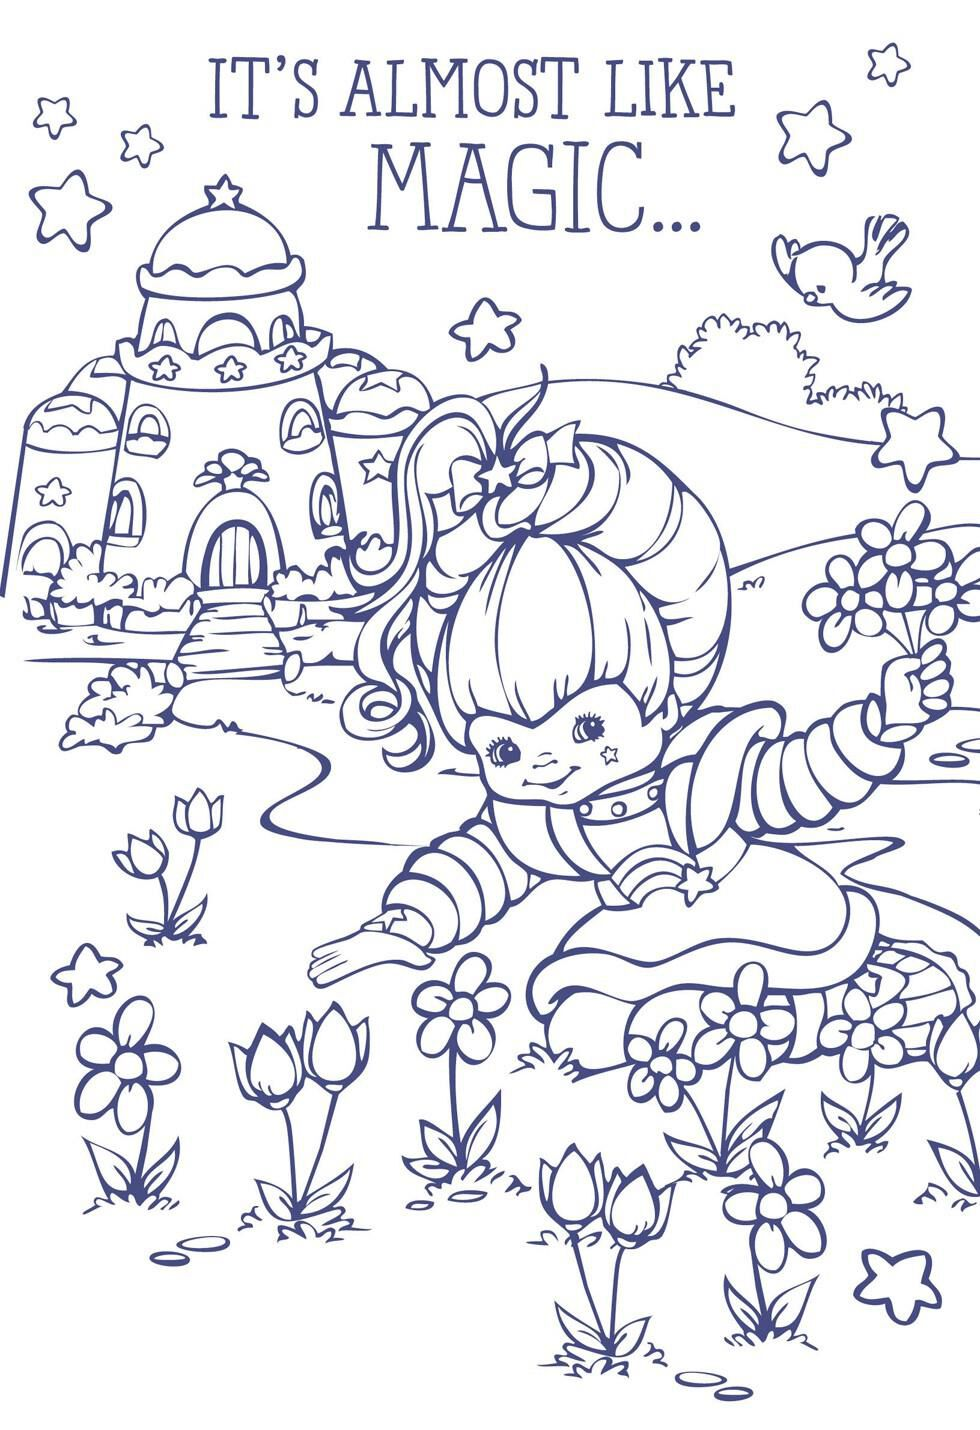 Rainbow brite characters coloring pages - Rainbow Brite Characters Coloring Pages 30